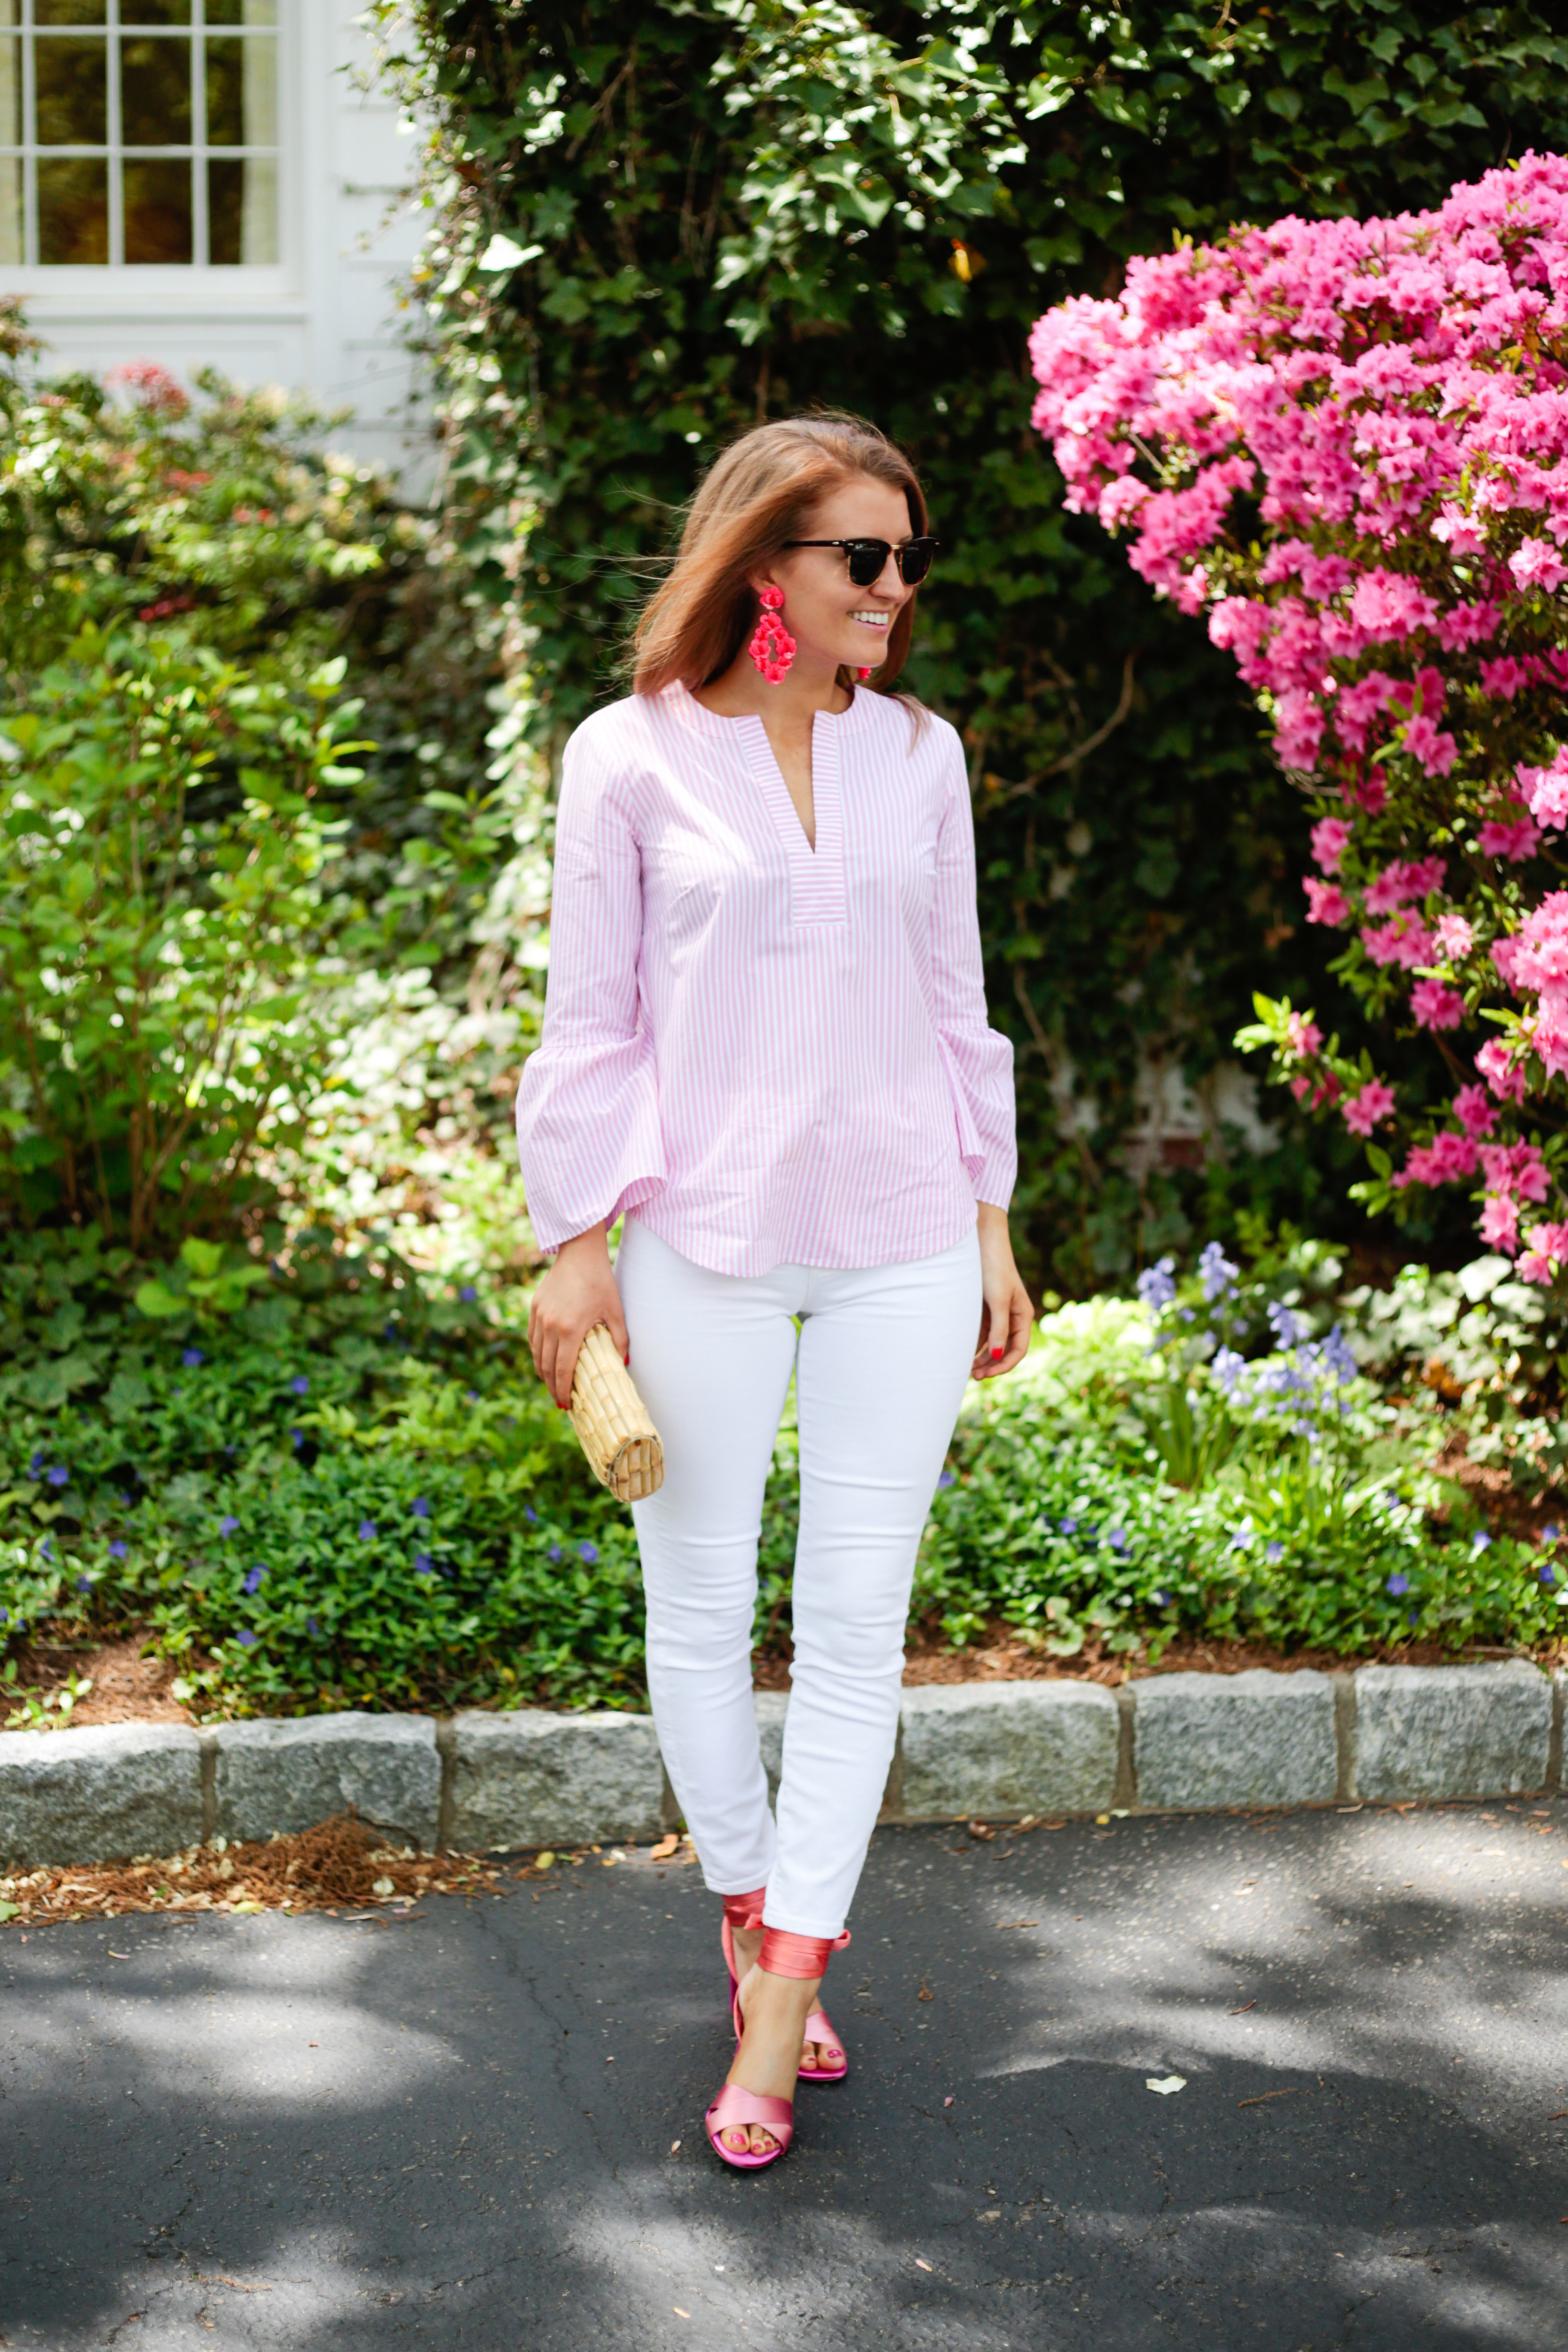 468adc457b3 J.Crew leather-backed sequin petal earrings J.Crew lookout high-rise crop  jean in white J.McLaughlin natural bamboo clutch J.Crew satin colorblock  sandals ...